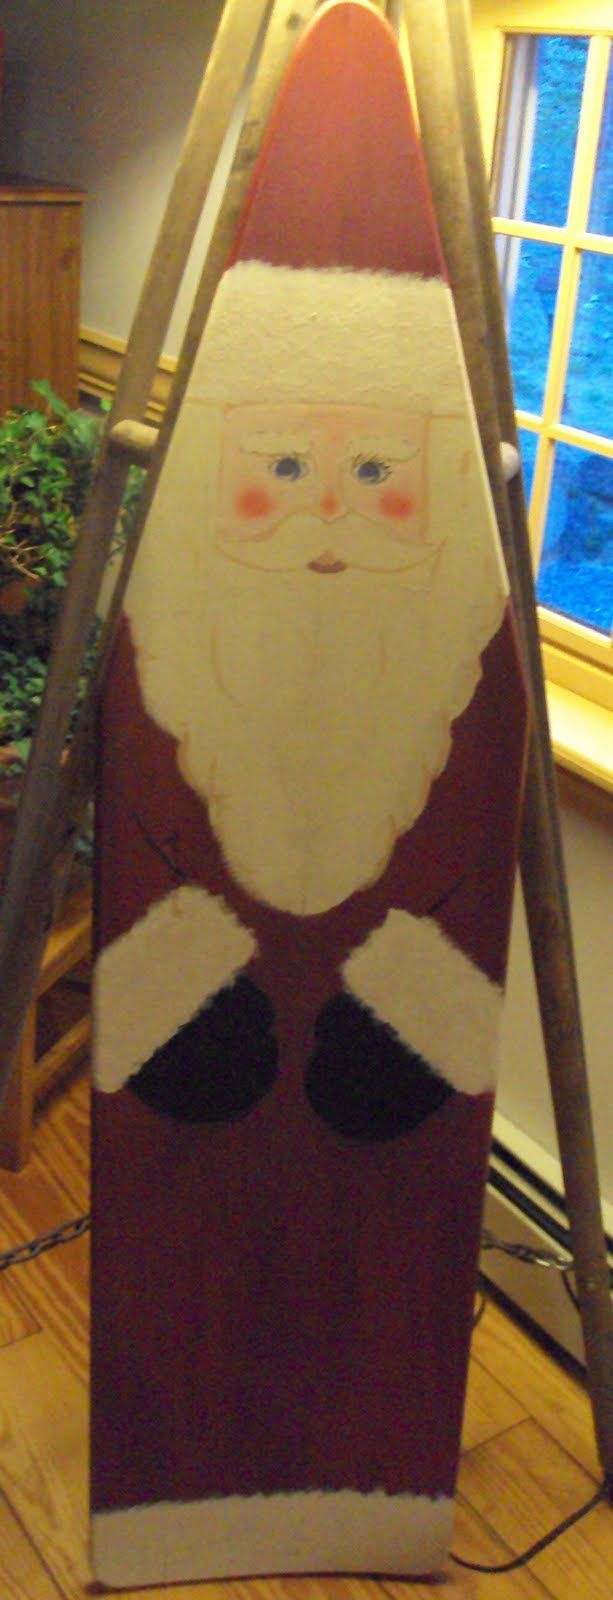 painted wood ironing board | This wooden ironing board I paid 20.00 to have this Santa put on it ...: